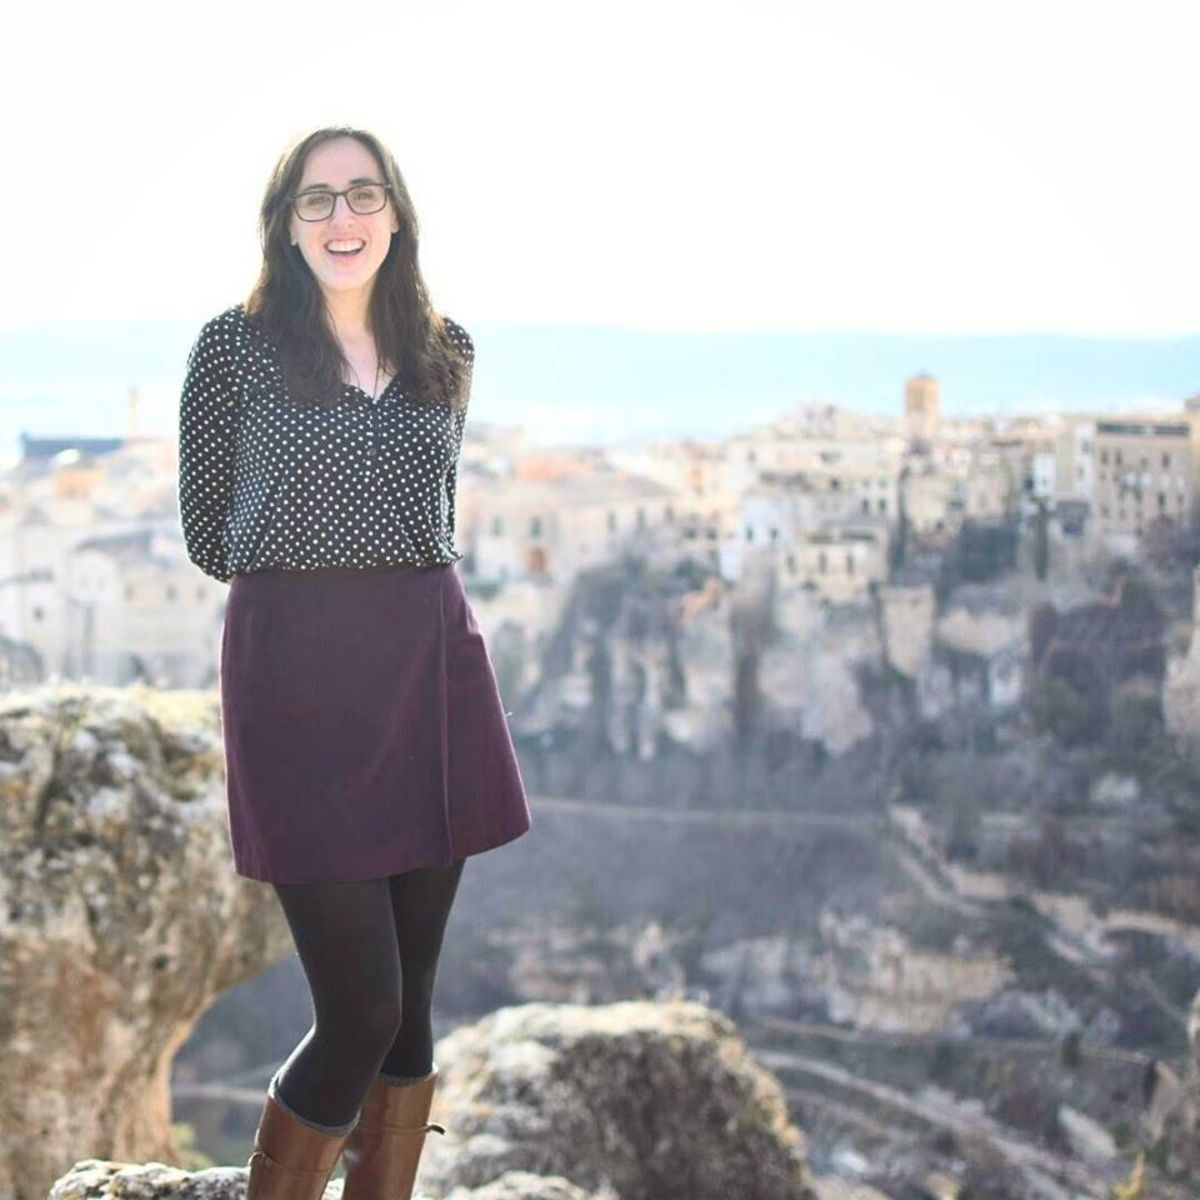 Therese visiting Cuenca, Spain.